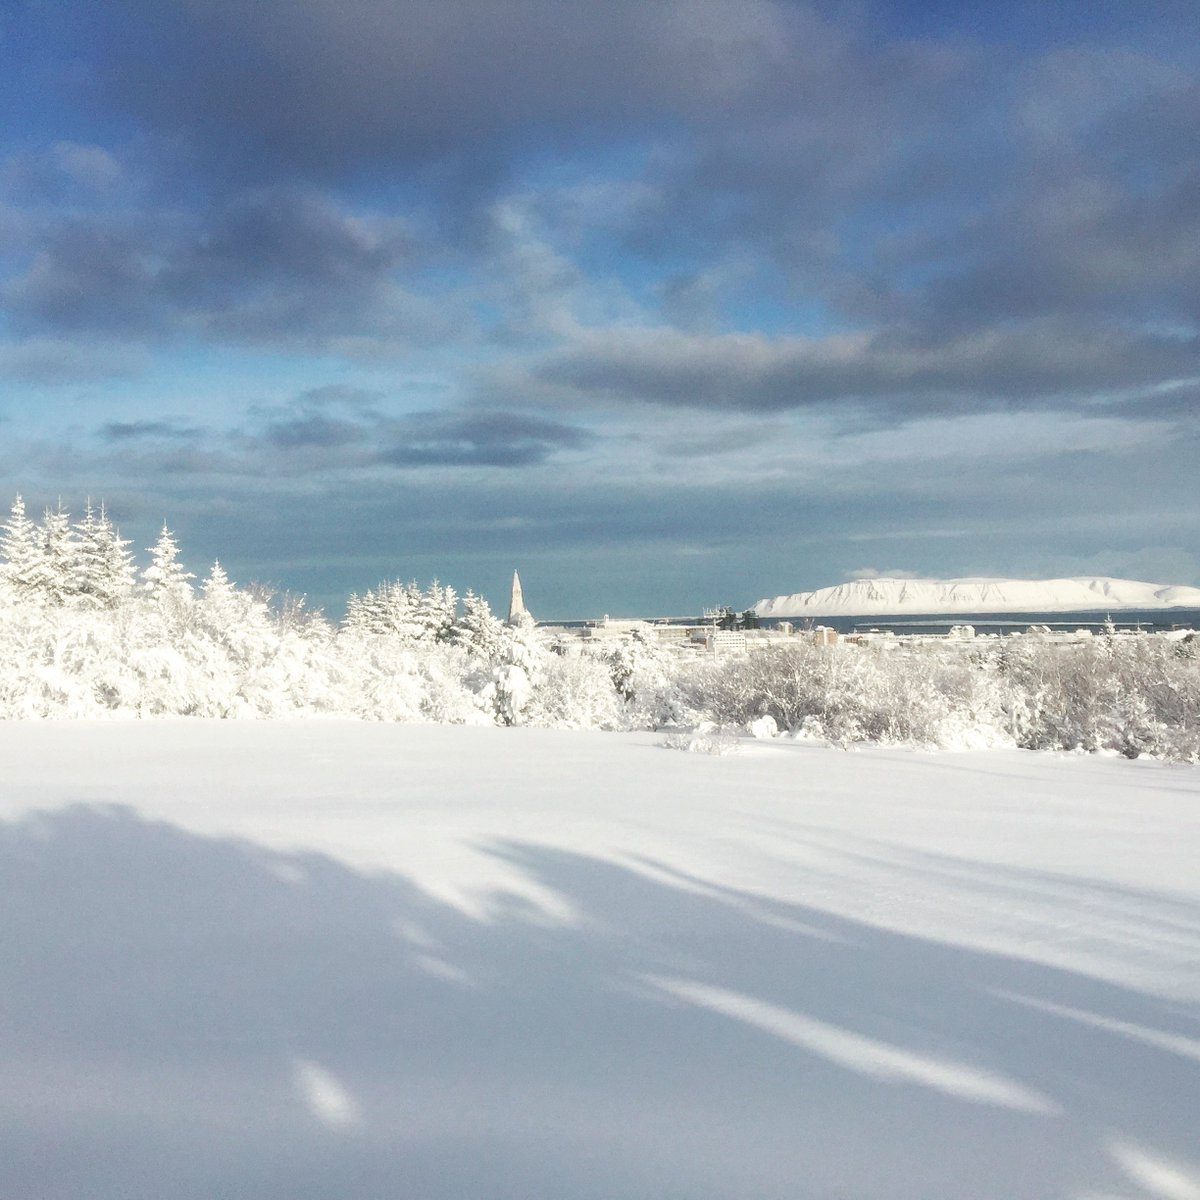 Reykjavík was hit with the biggest snowfall in ages and it's a beautiful day so go out and enjoy it! #winterwonderland <br>http://pic.twitter.com/R1dhHFN4KH